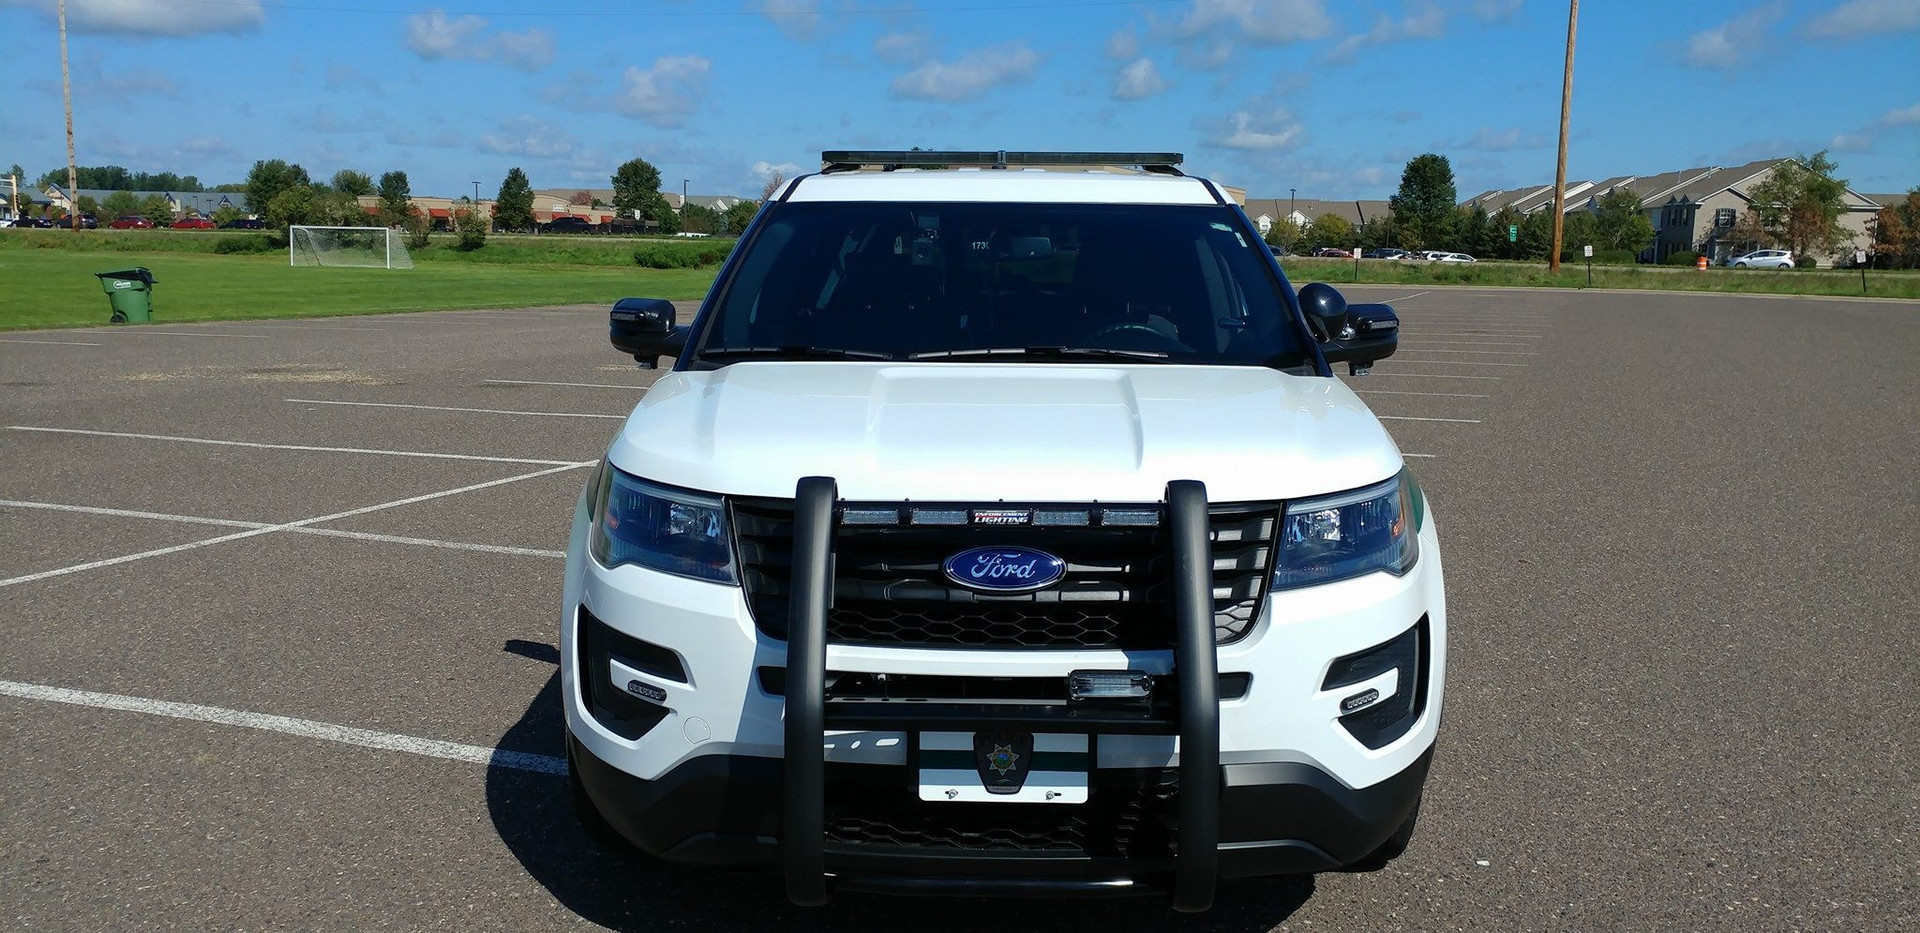 Three Rivers Police Department